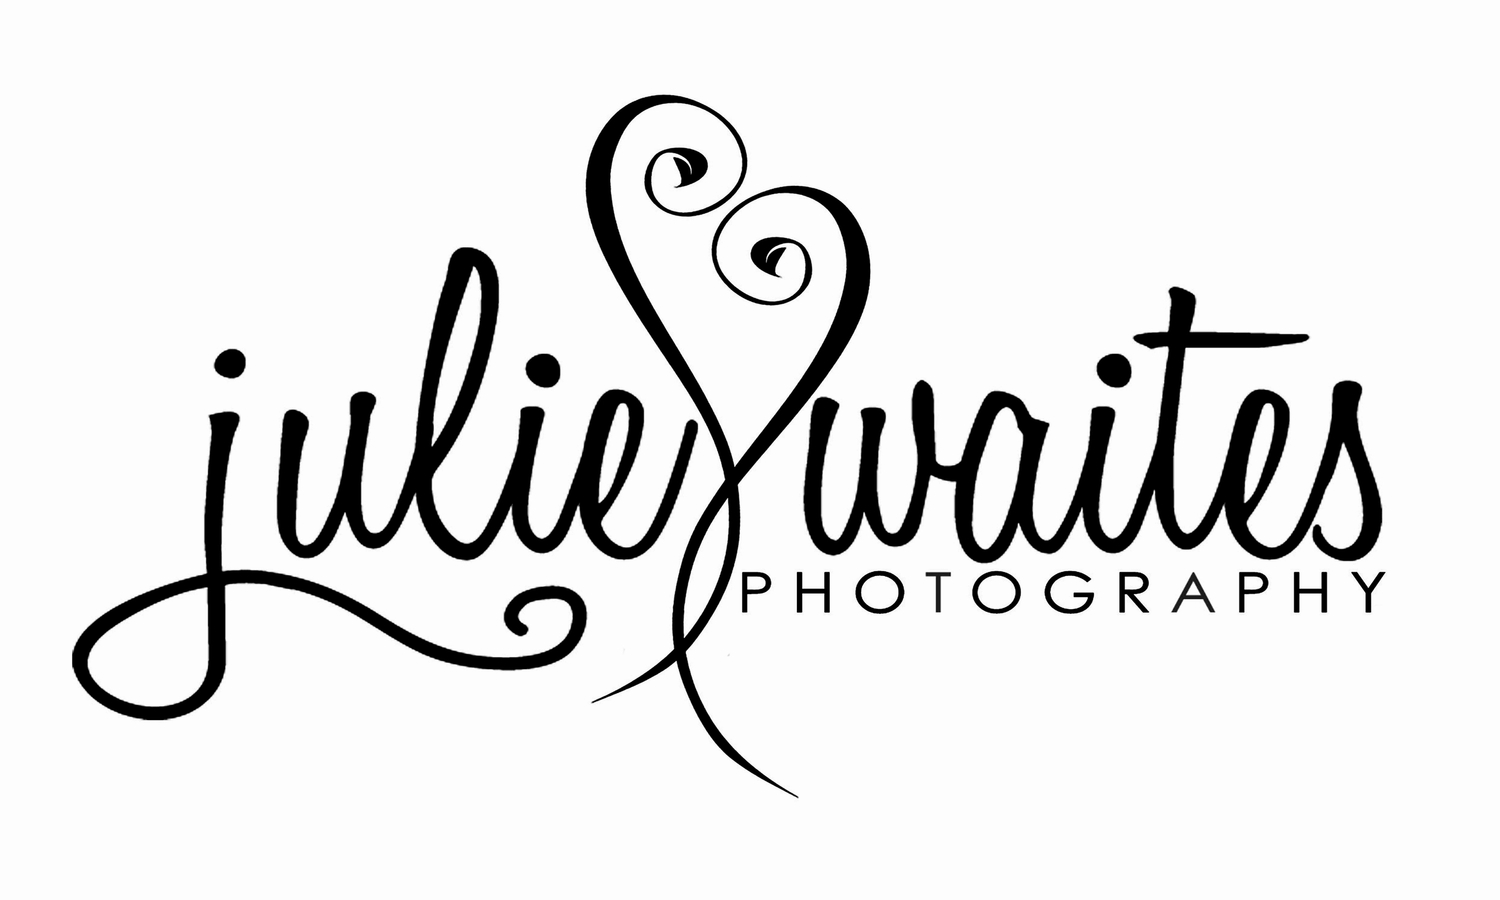 Julie Waites Photography